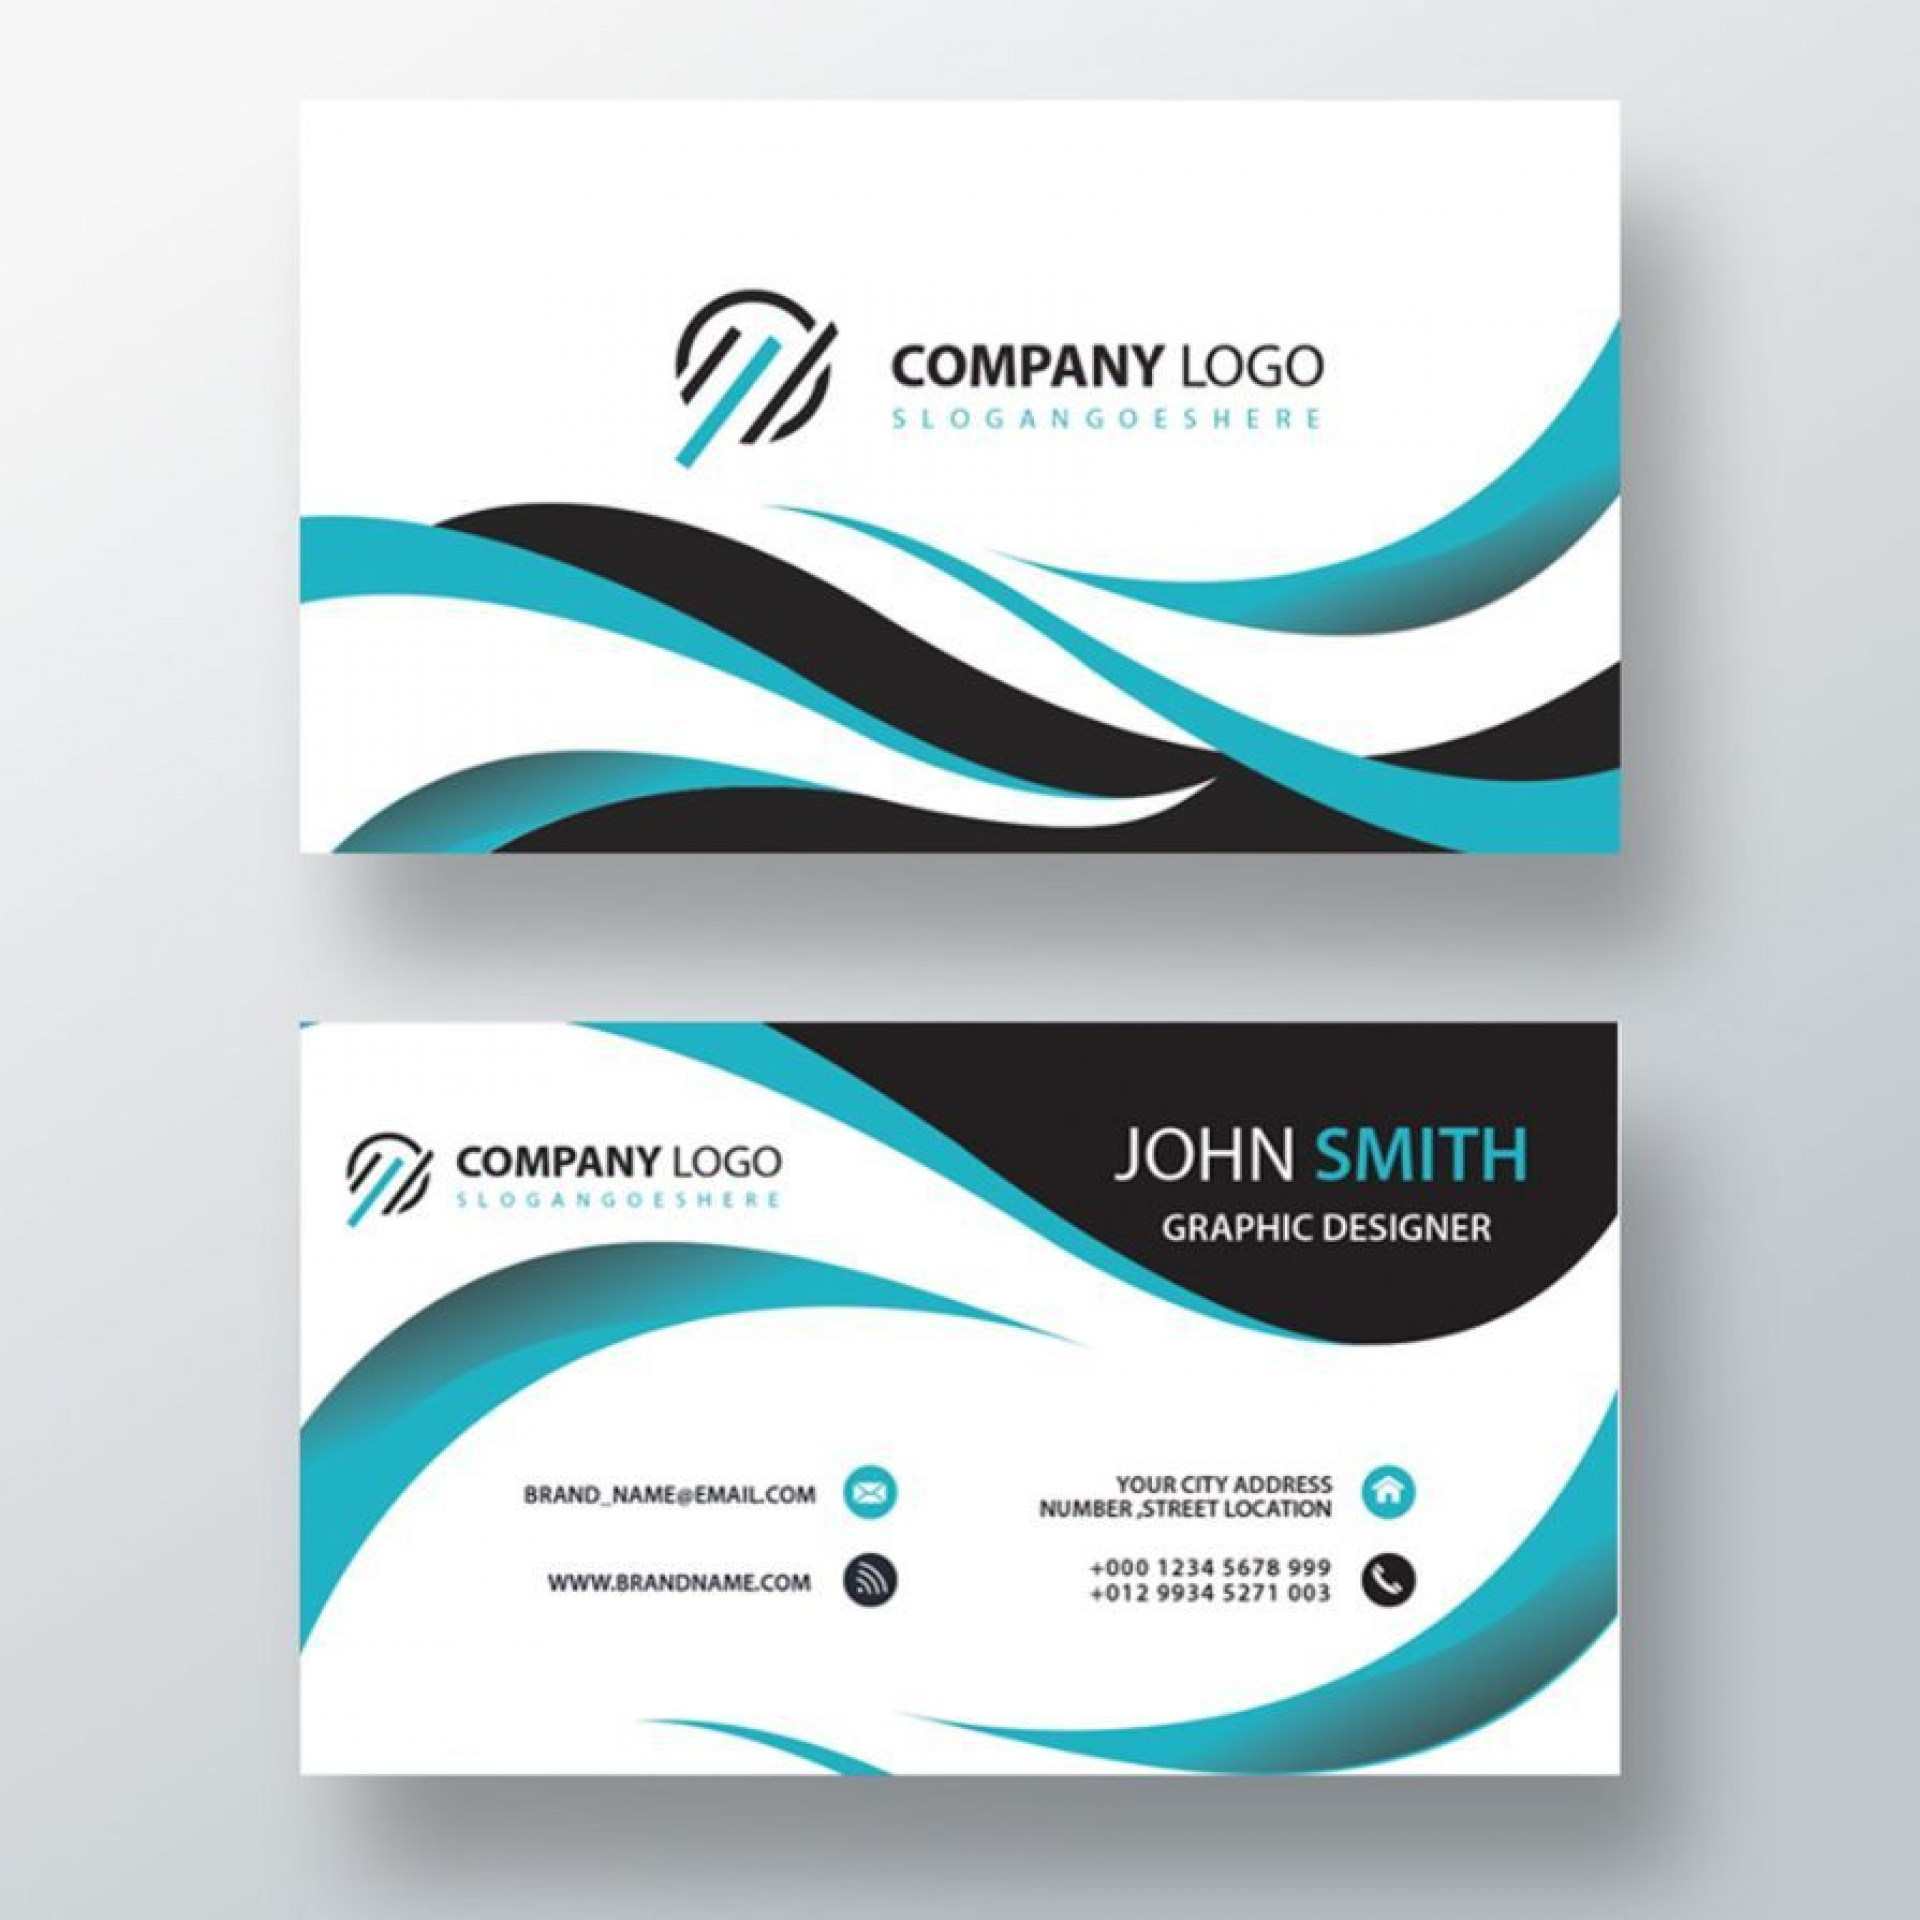 001 Exceptional Free Simple Busines Card Template Word High Definition 1920